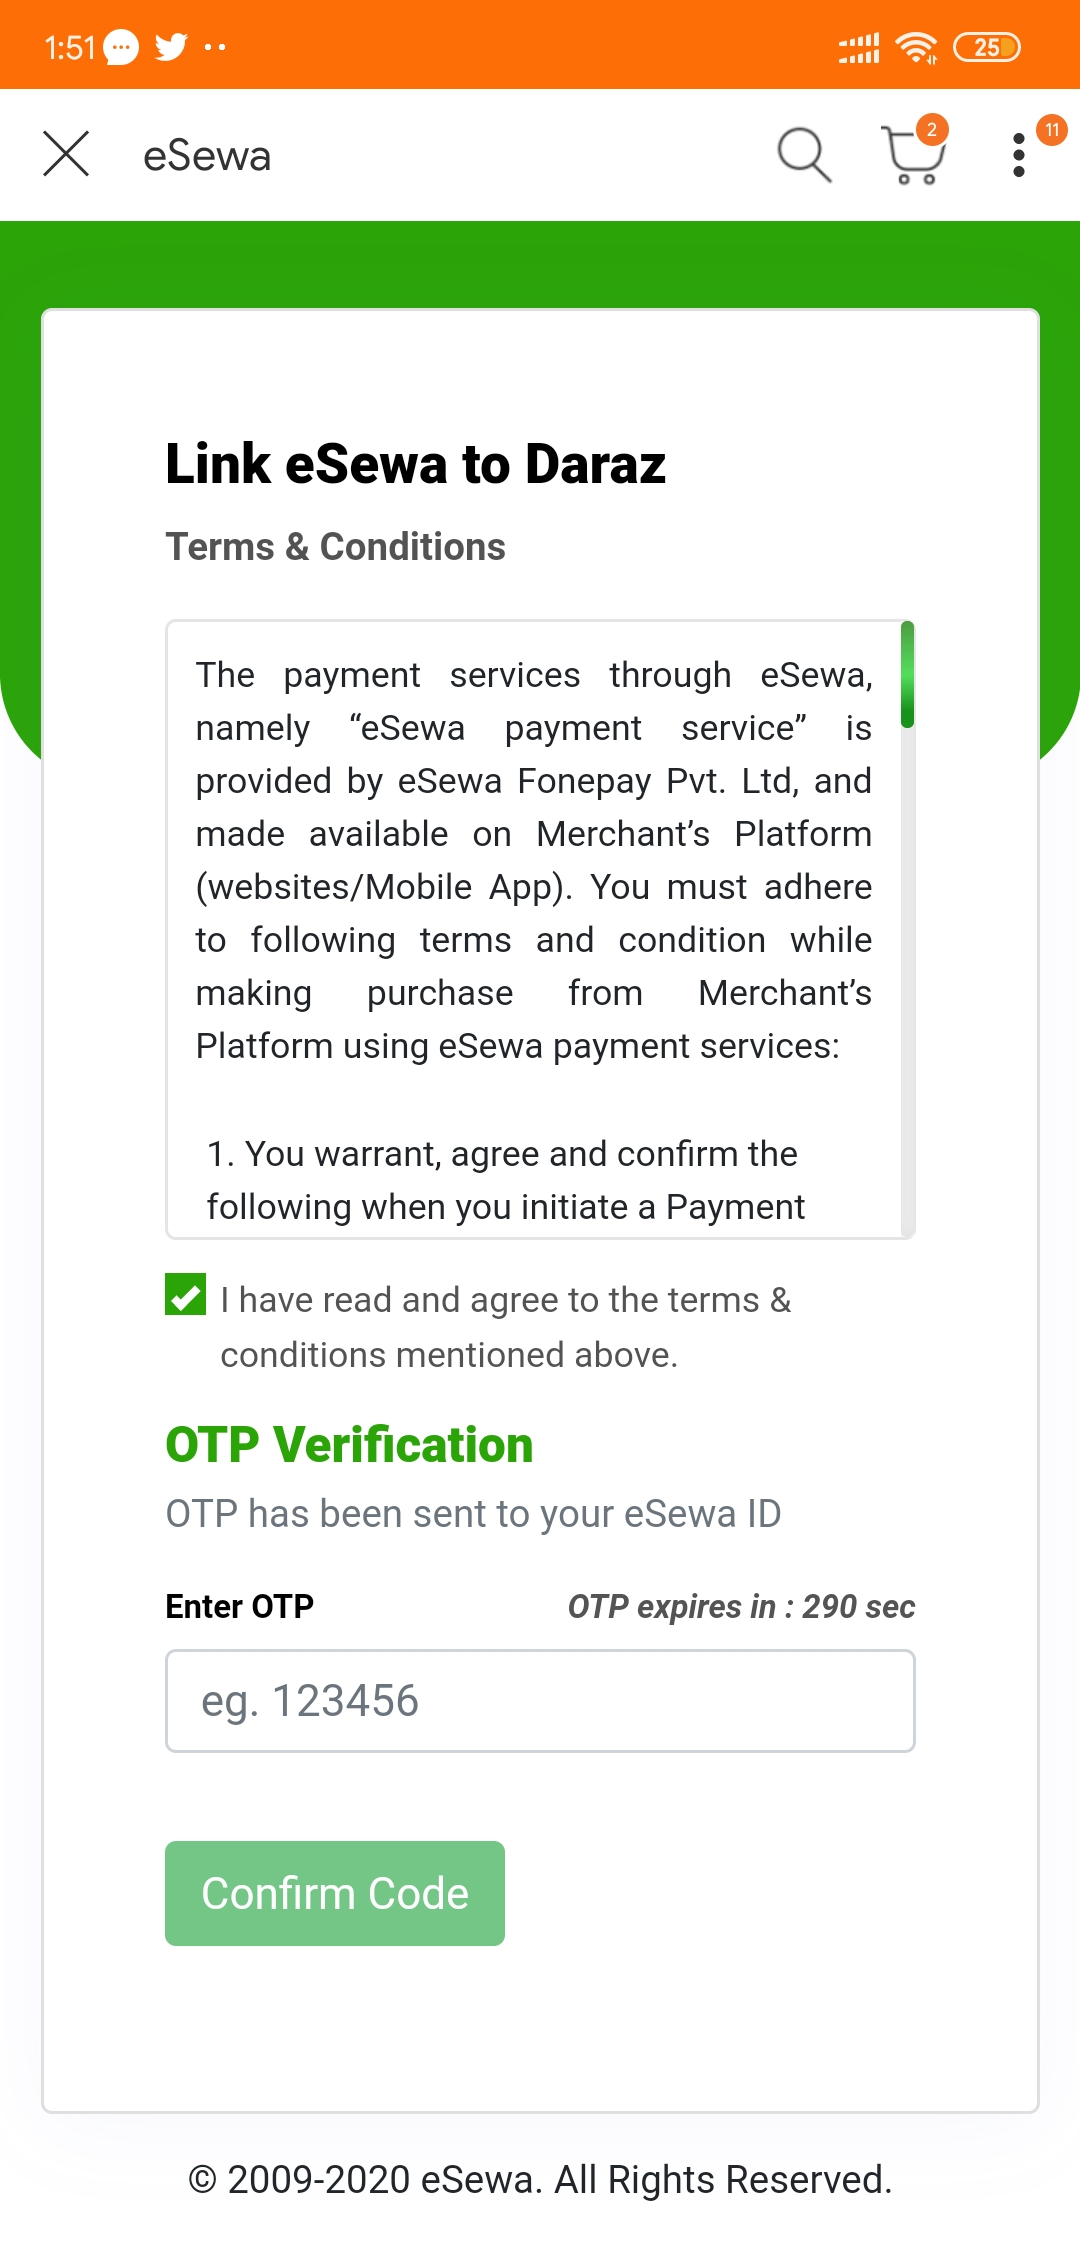 eSewa Payment Now Available on Daraz | Daraz Accepts eSewa Payment 4